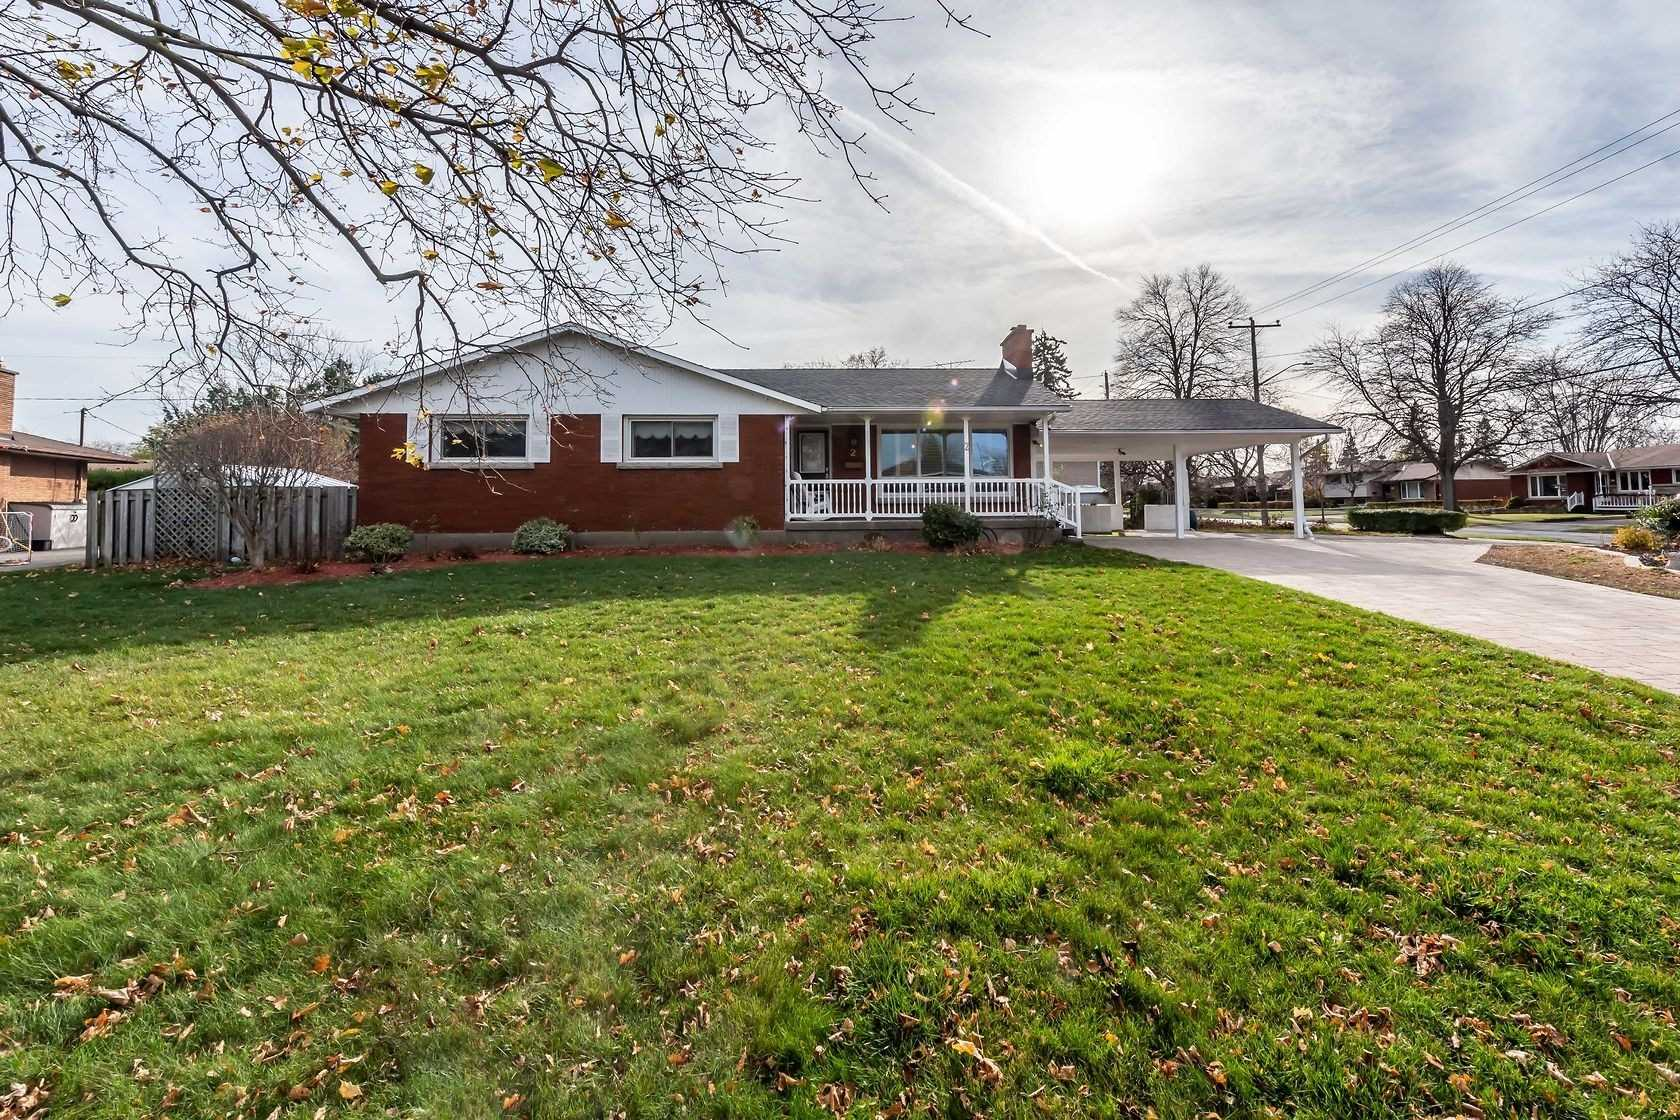 For Sale: 2 Costen Boulevard, St Catharines, ON | 3 Bed, 2 Bath House for $599990.00.